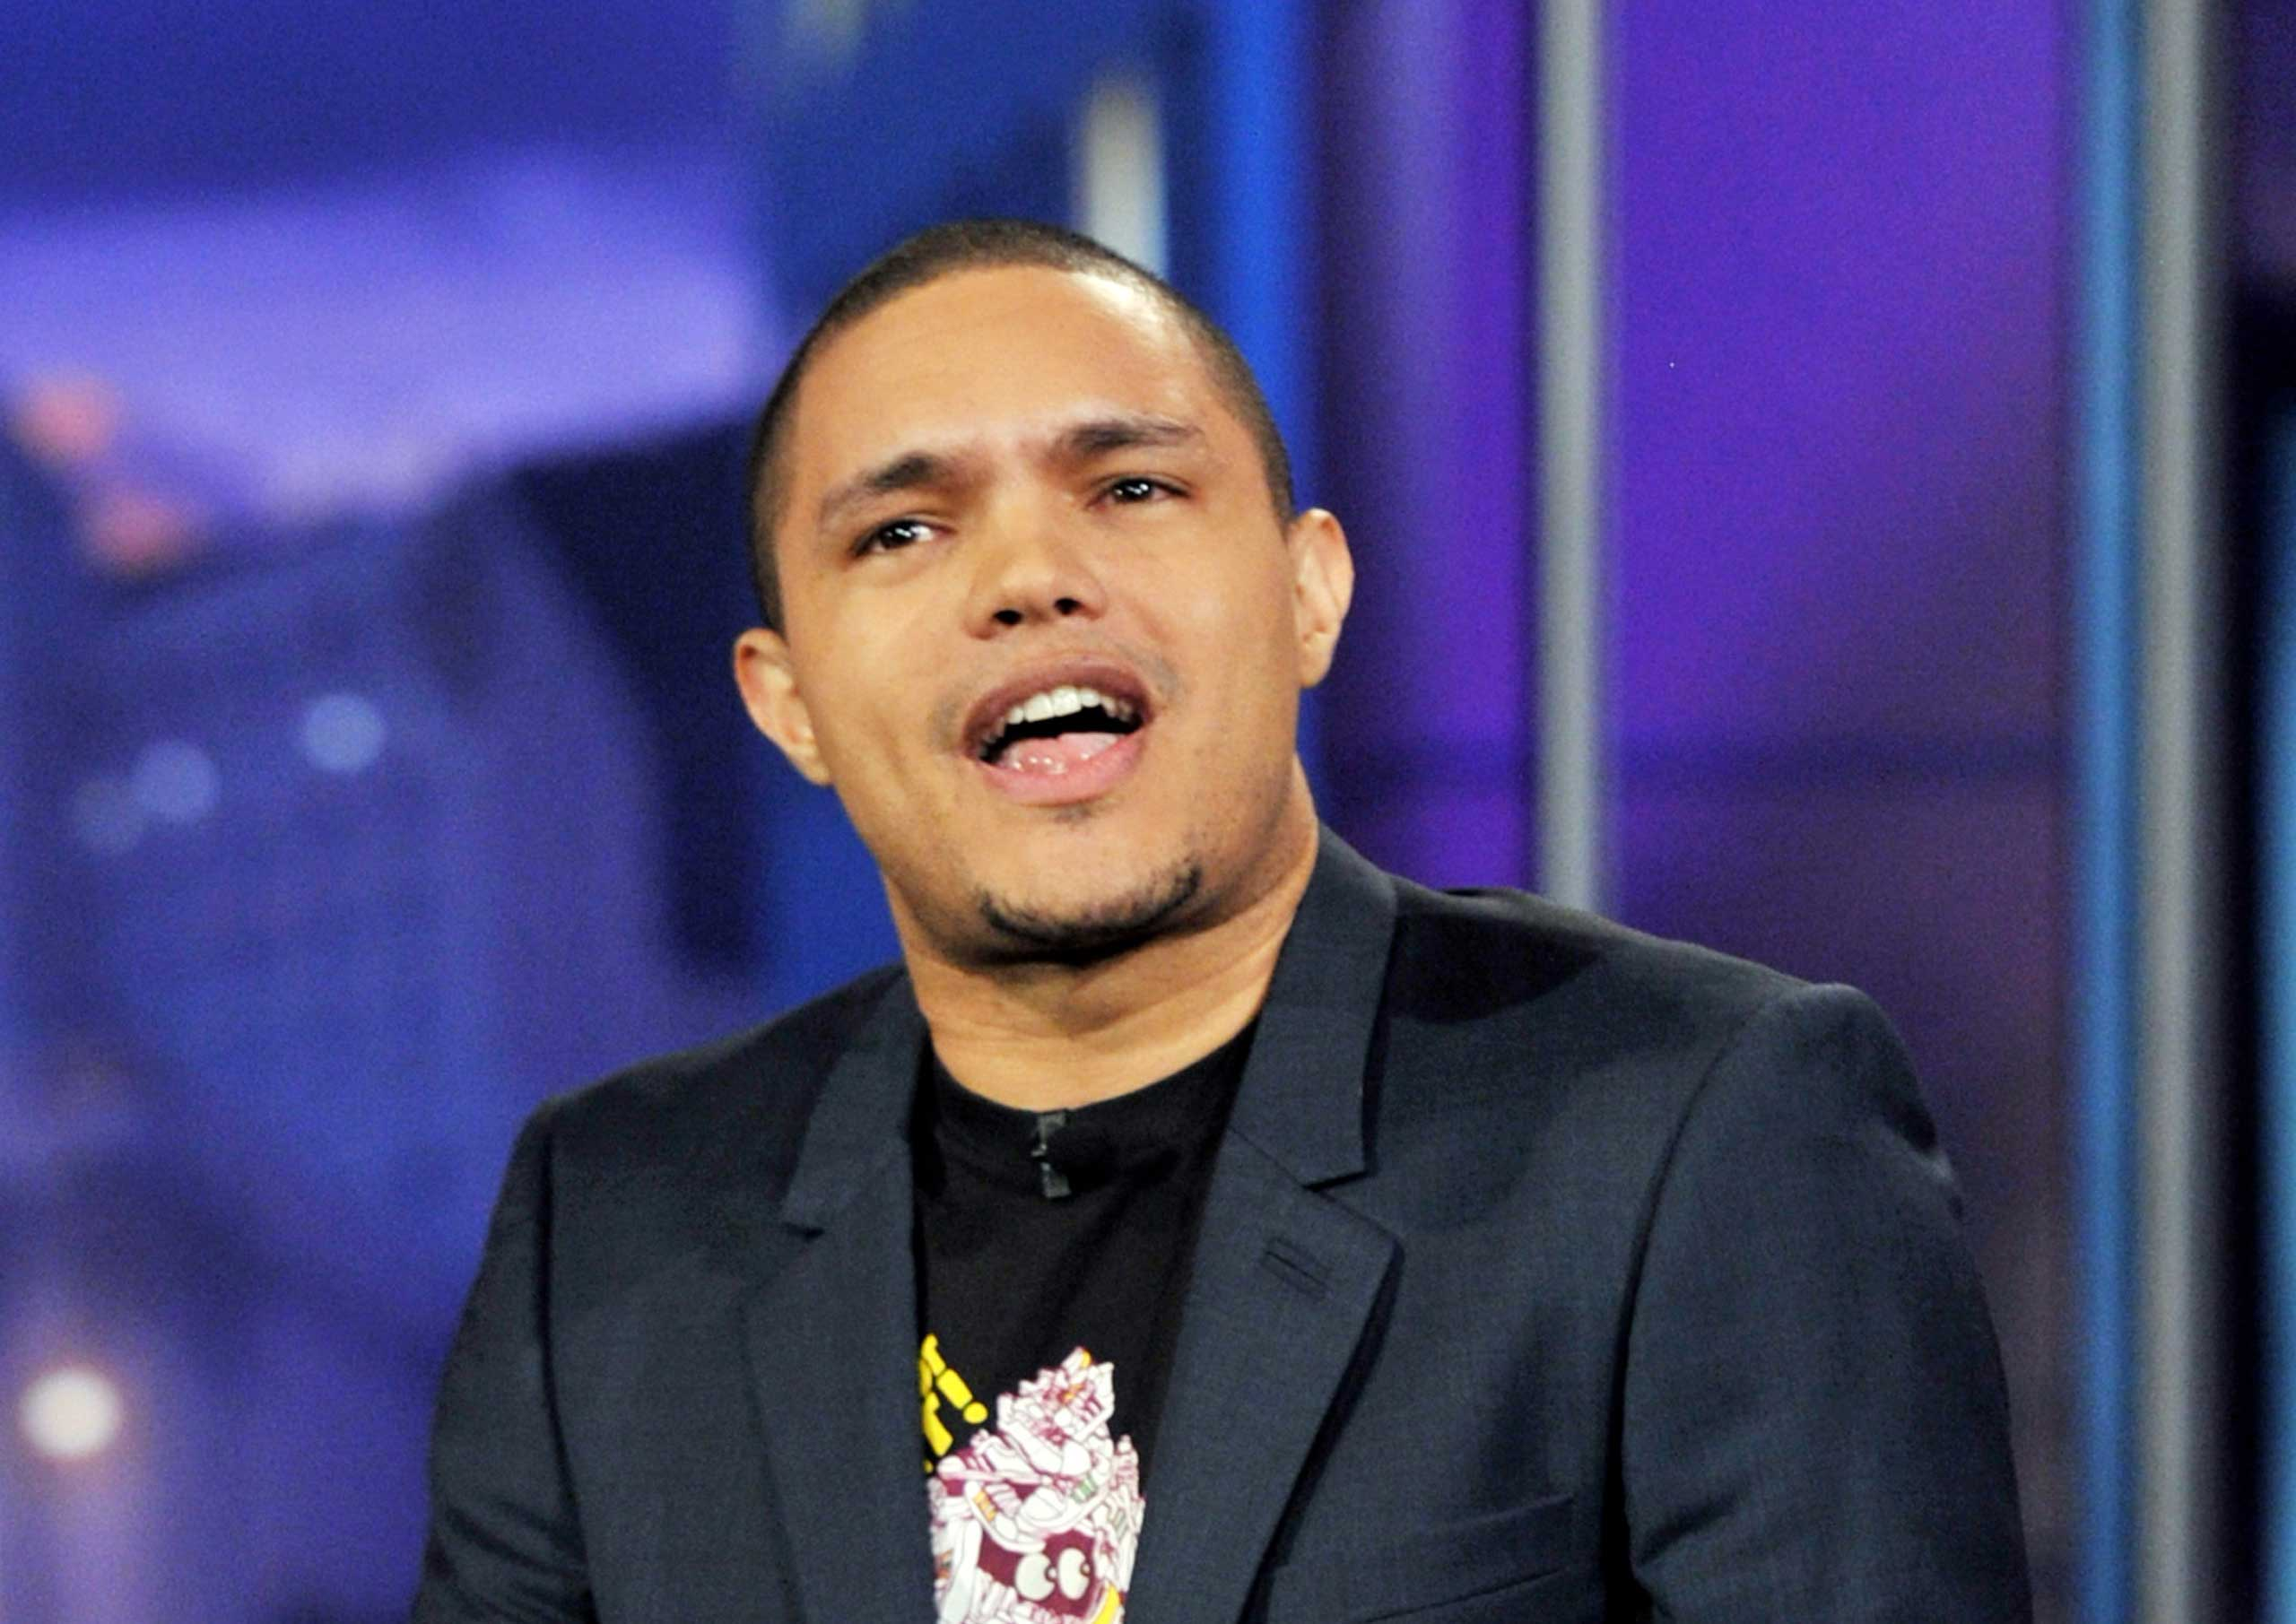 Comedian Trevor Noah performs on the Tonight Show With Jay Leno in 2012.